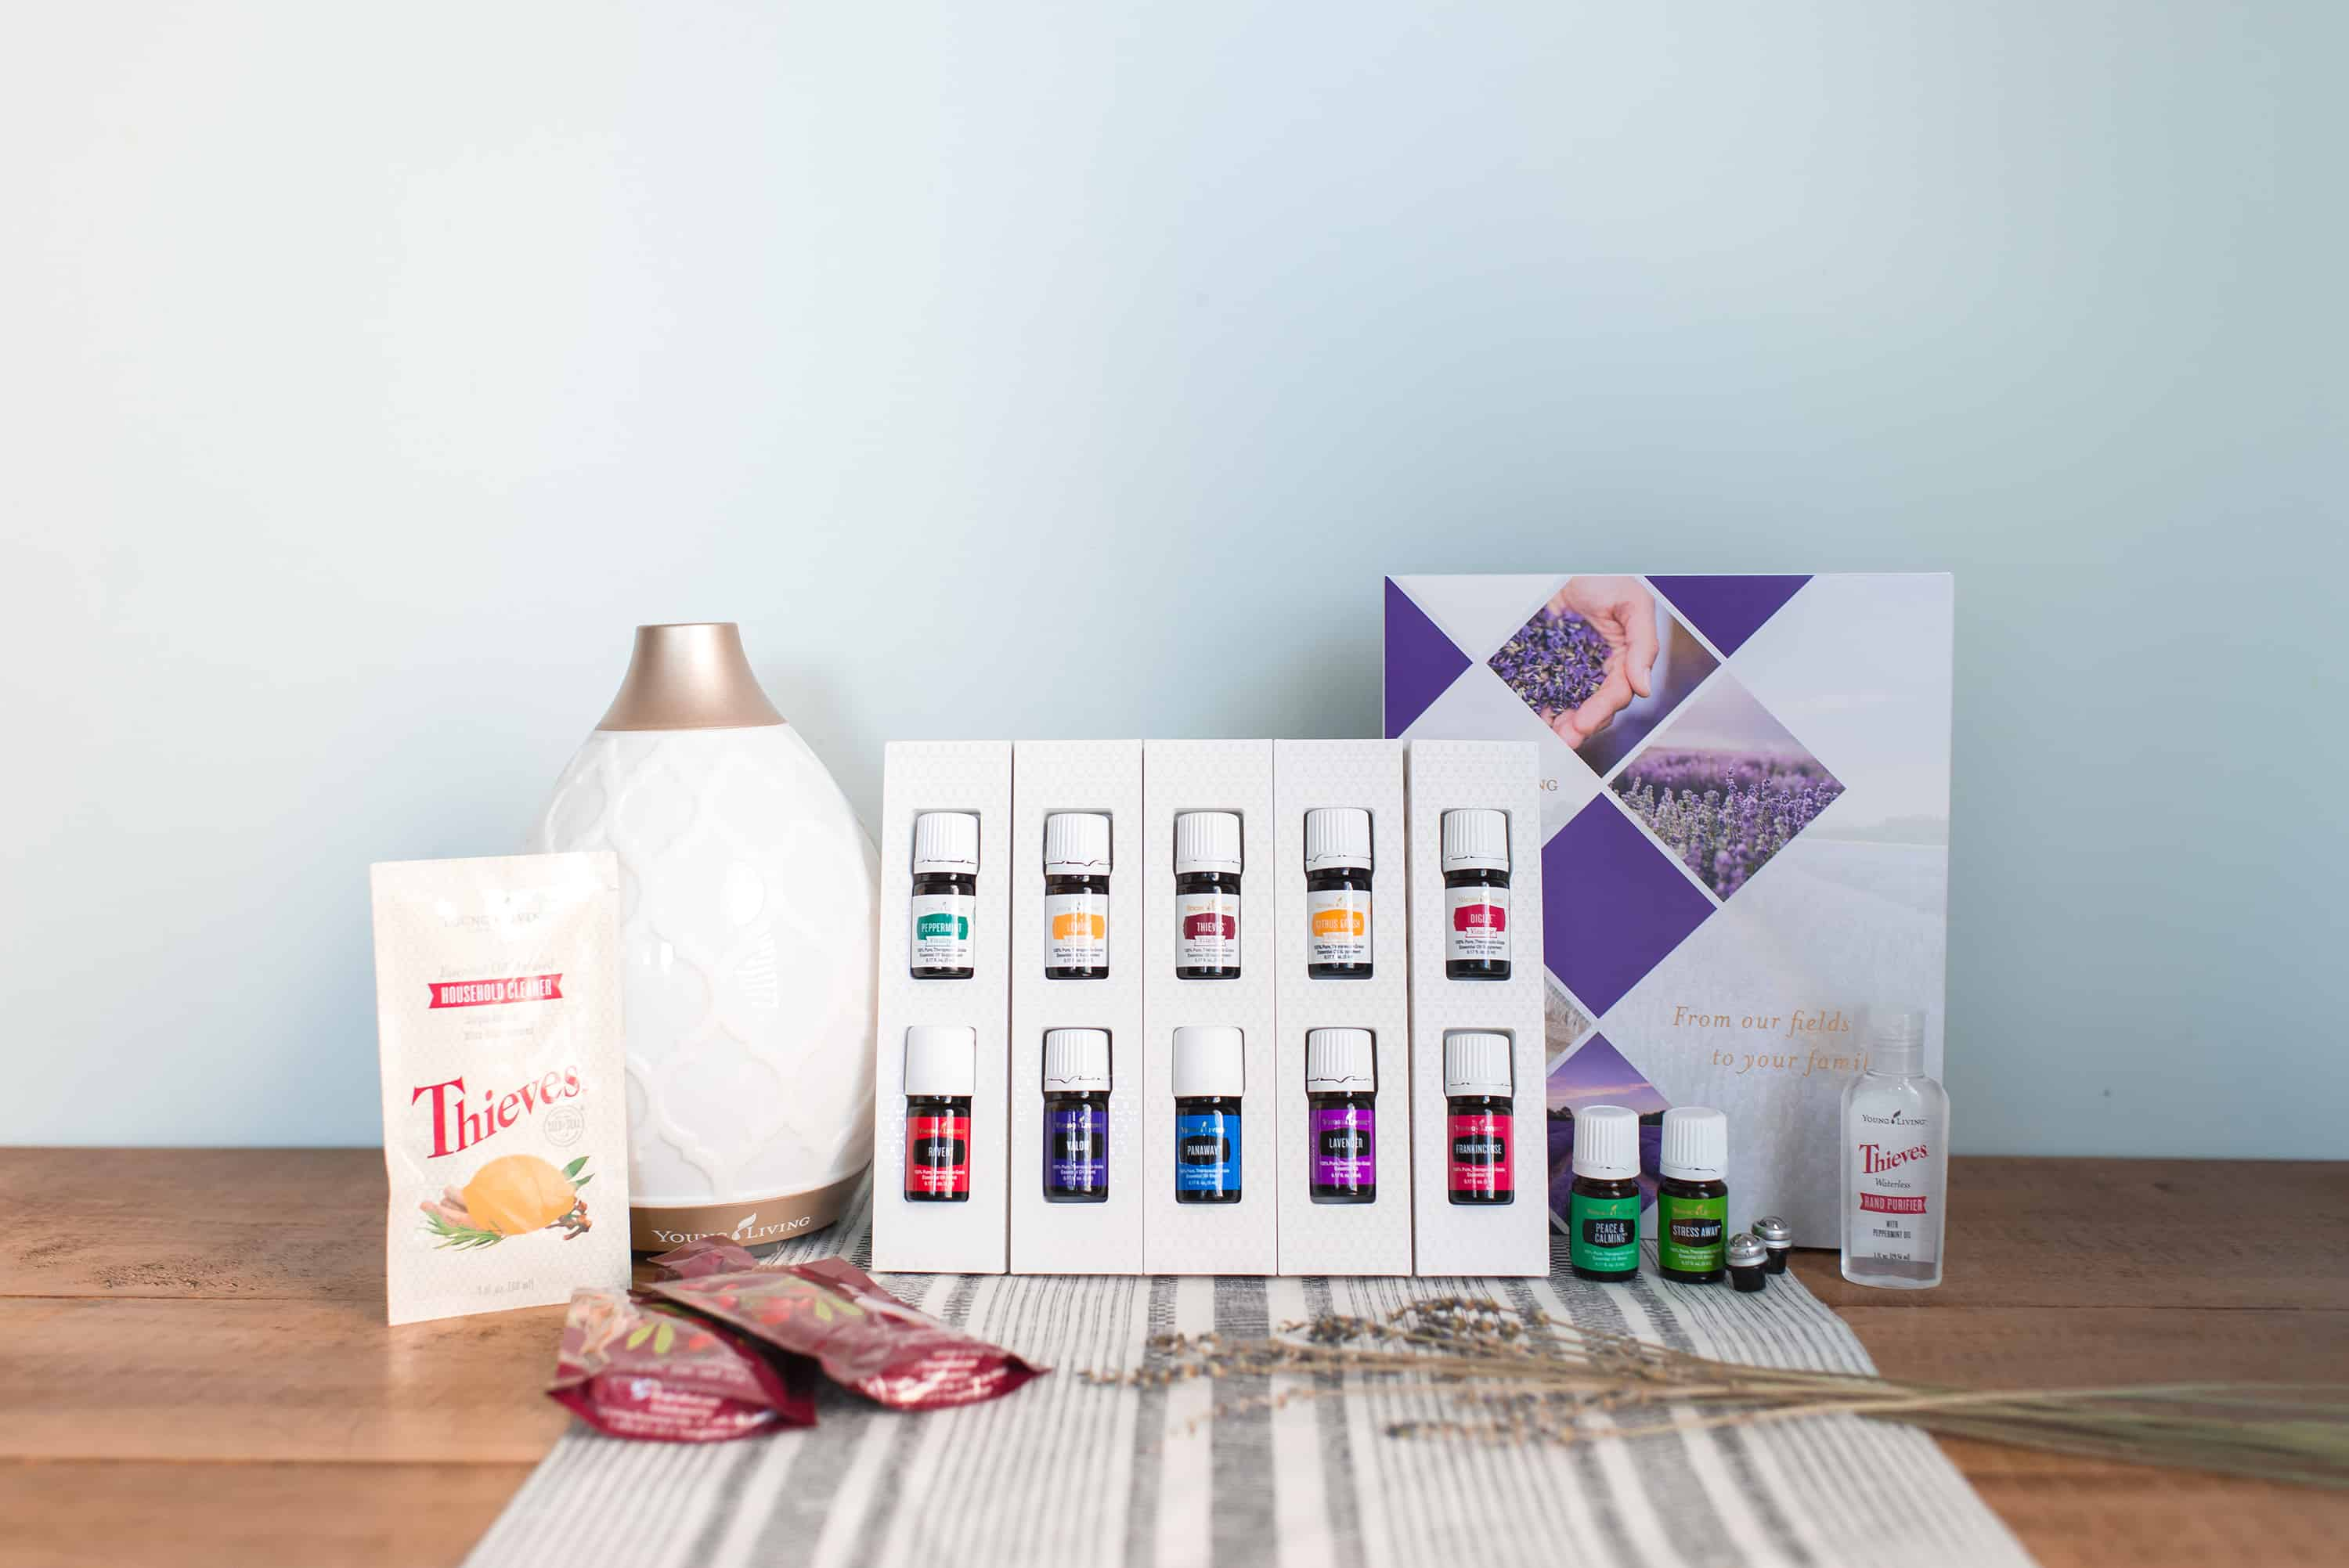 Get a FREE Bottle of Thieves Household Cleaner with Young Living starter kit.